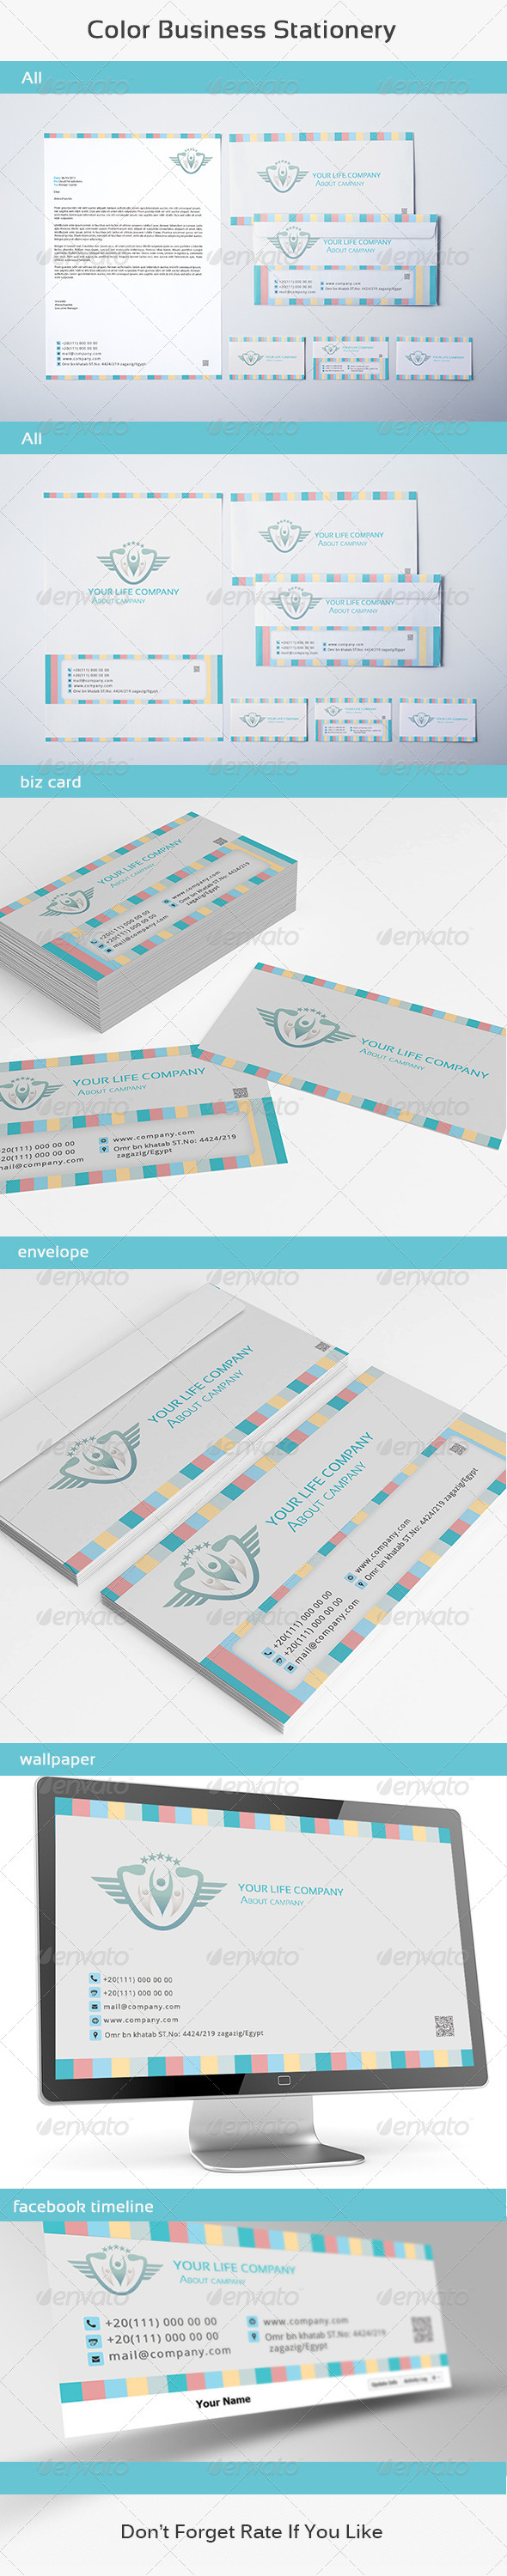 GraphicRiver Color Business Stationery 6273533